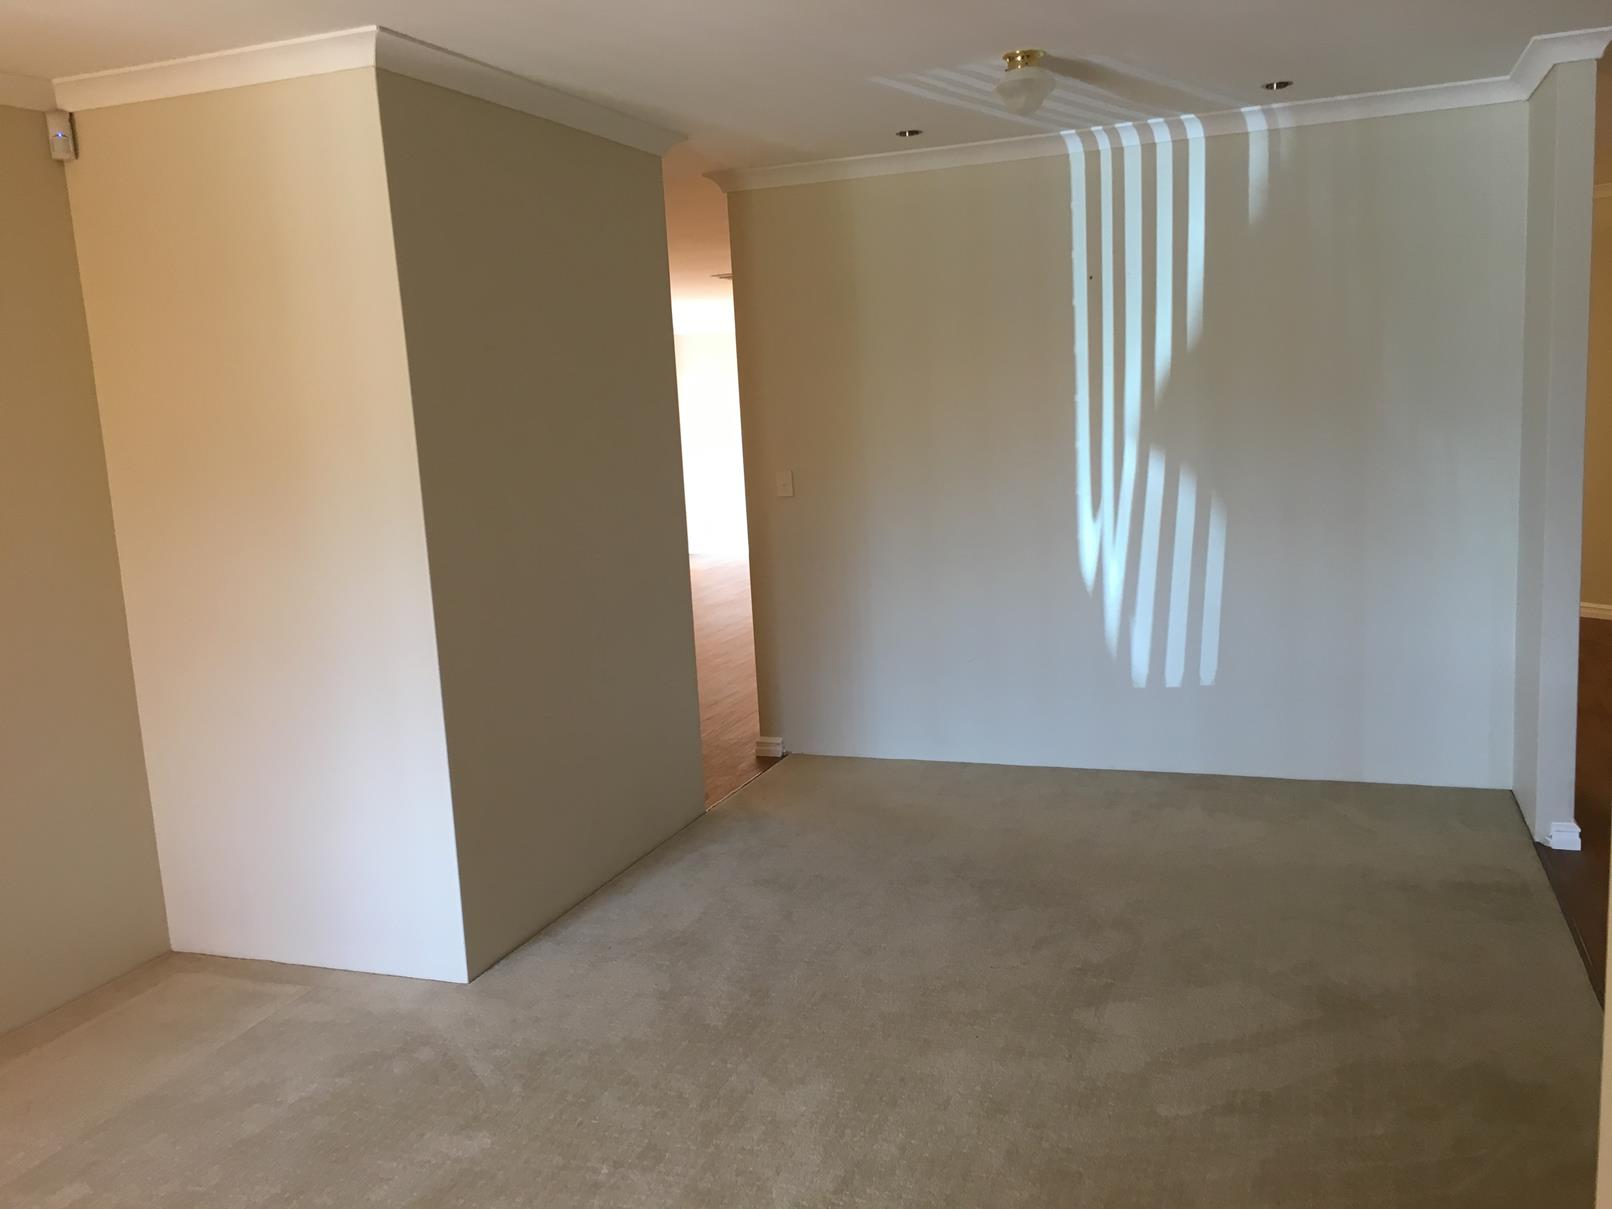 Property for rent in CANNING VALE, 16 Audley Place : Attree Real Estate